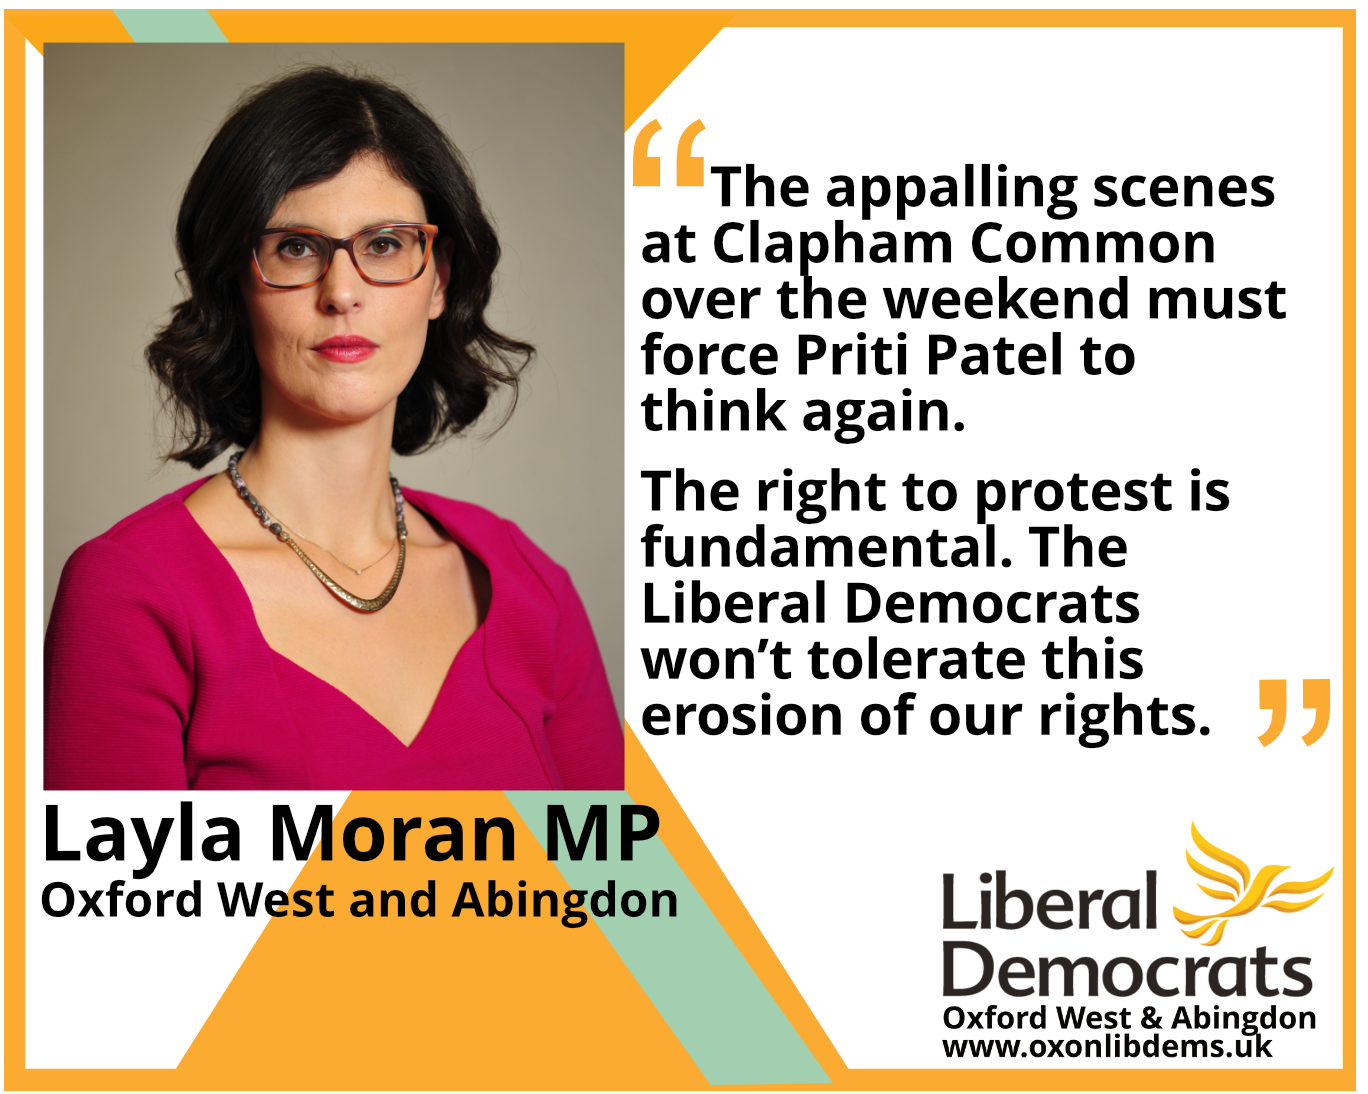 The appalling scenes at Clapham Common over the weekend must force Priti Patel to think again.  The right to protest is fundamental. The Liberal Democrats won't tolerate this erosion of our rights